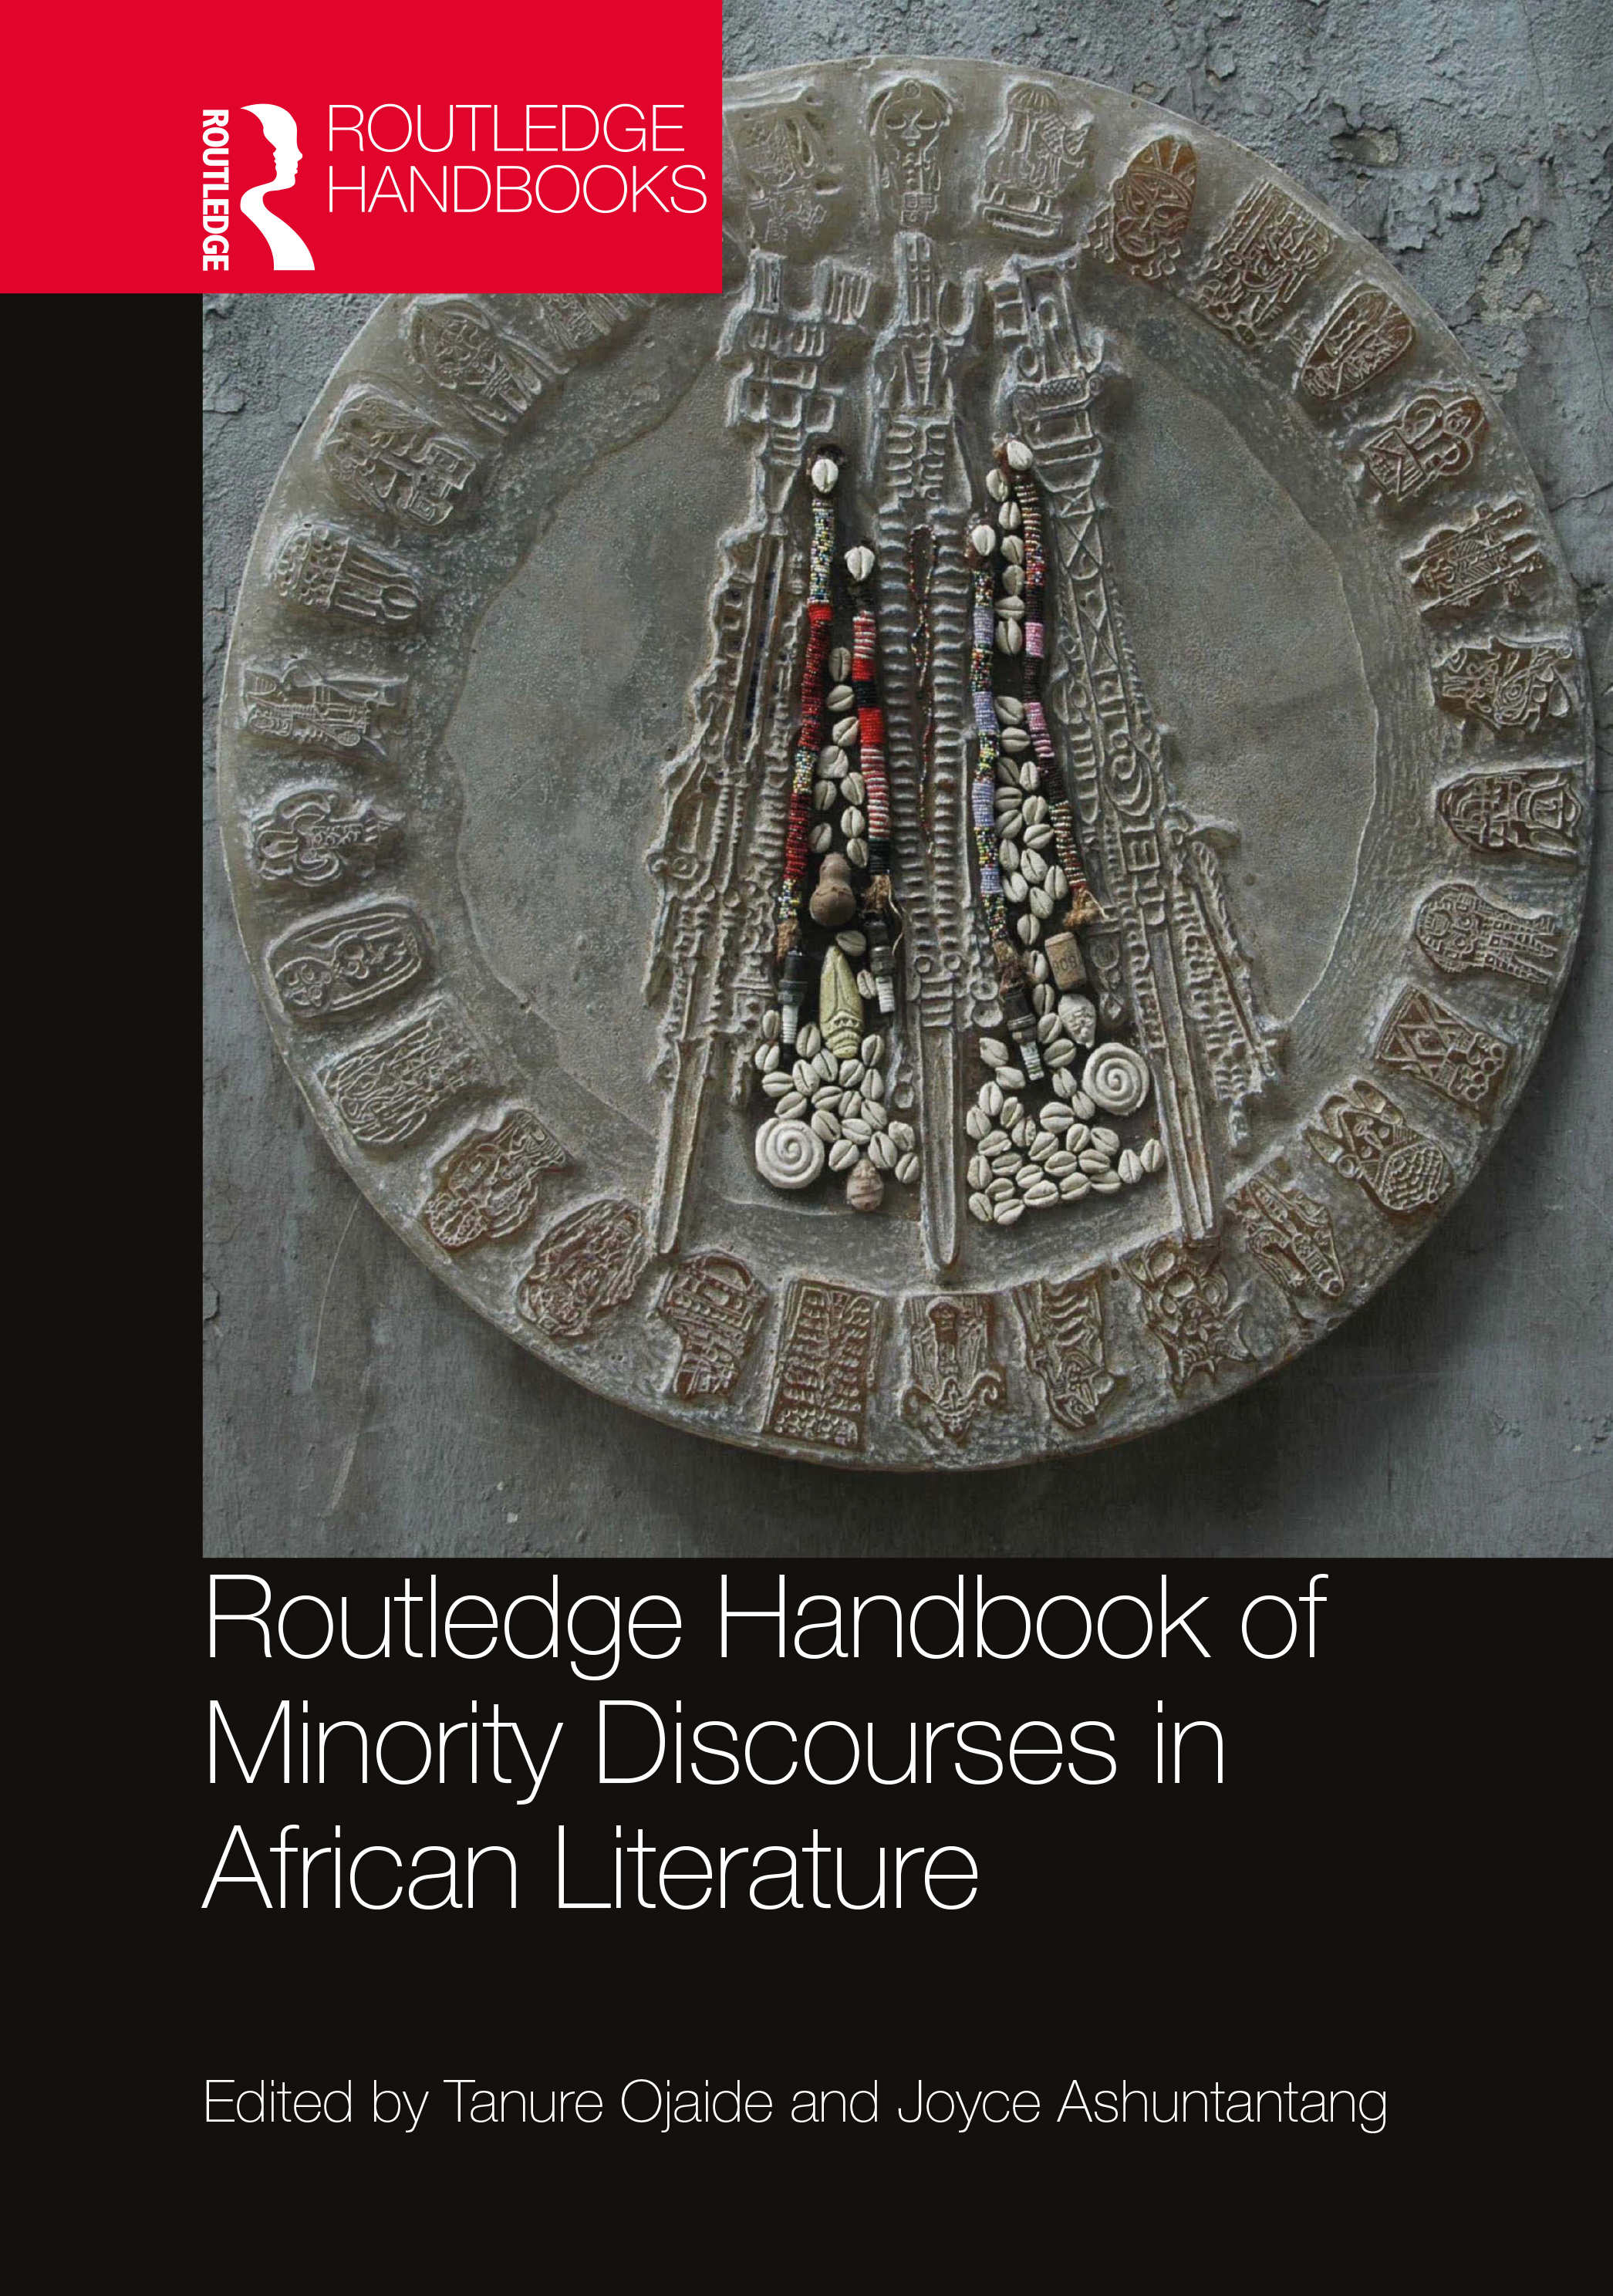 Routledge Handbook of Minority Discourses in African Literature book cover